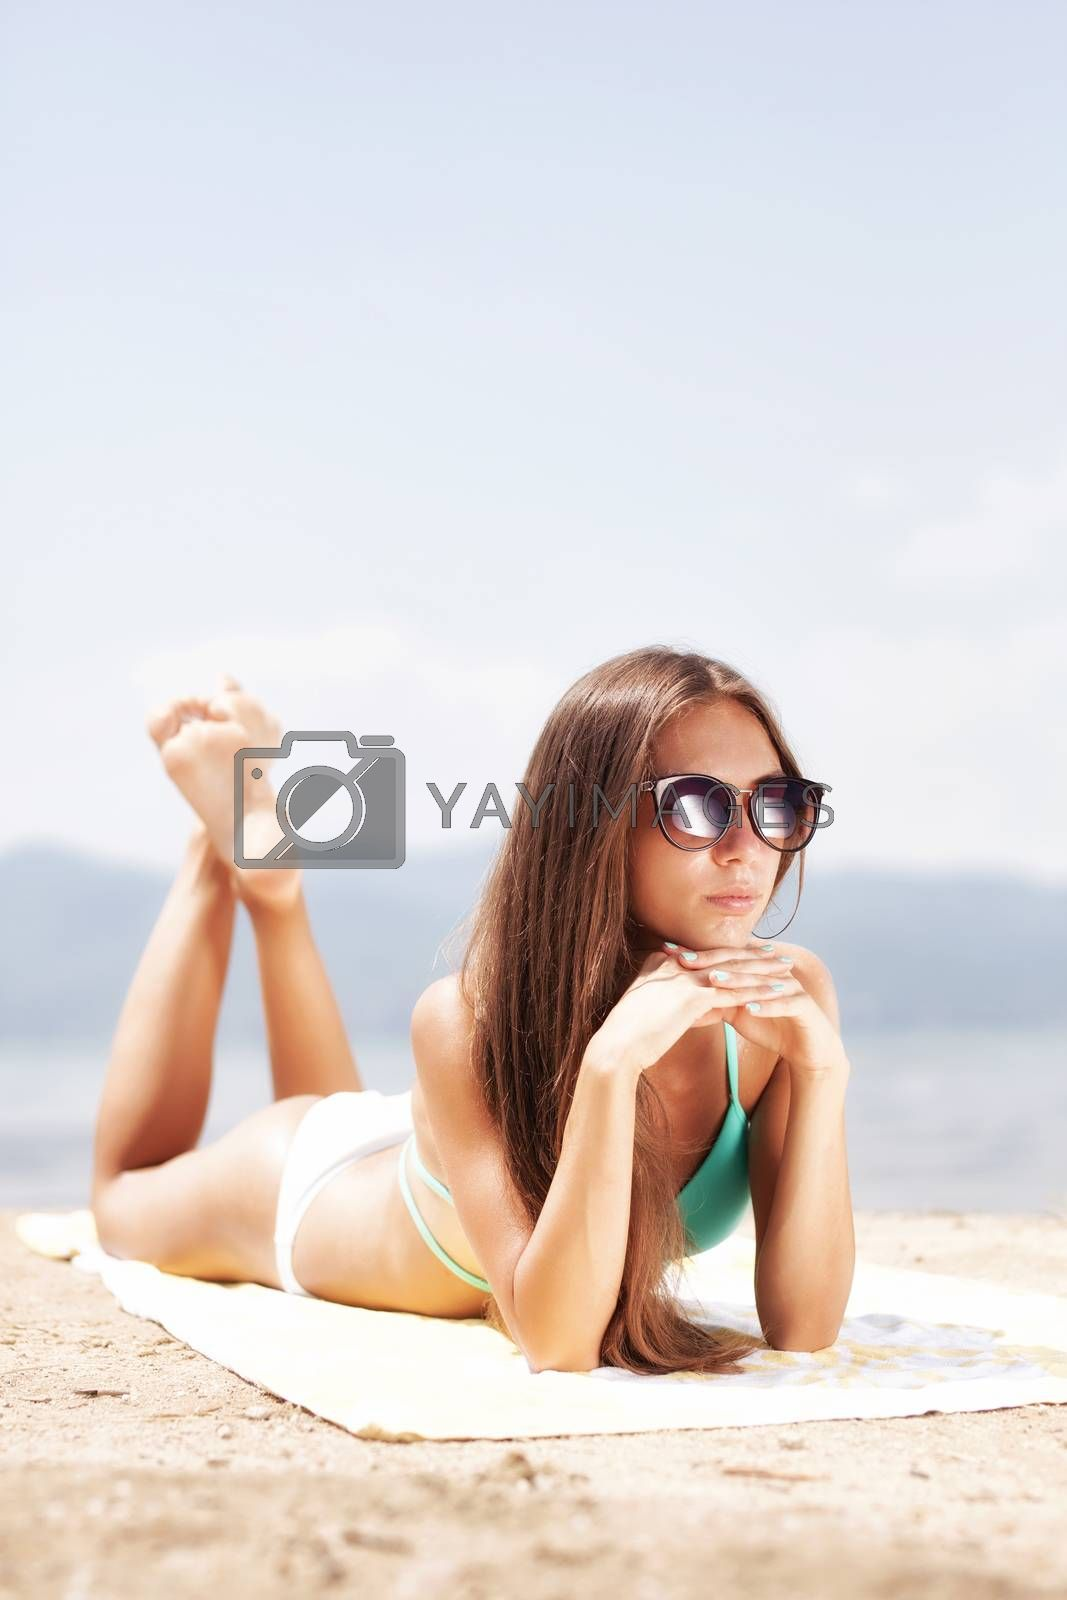 Royalty free image of girl sunbathing on a beach by kokimk